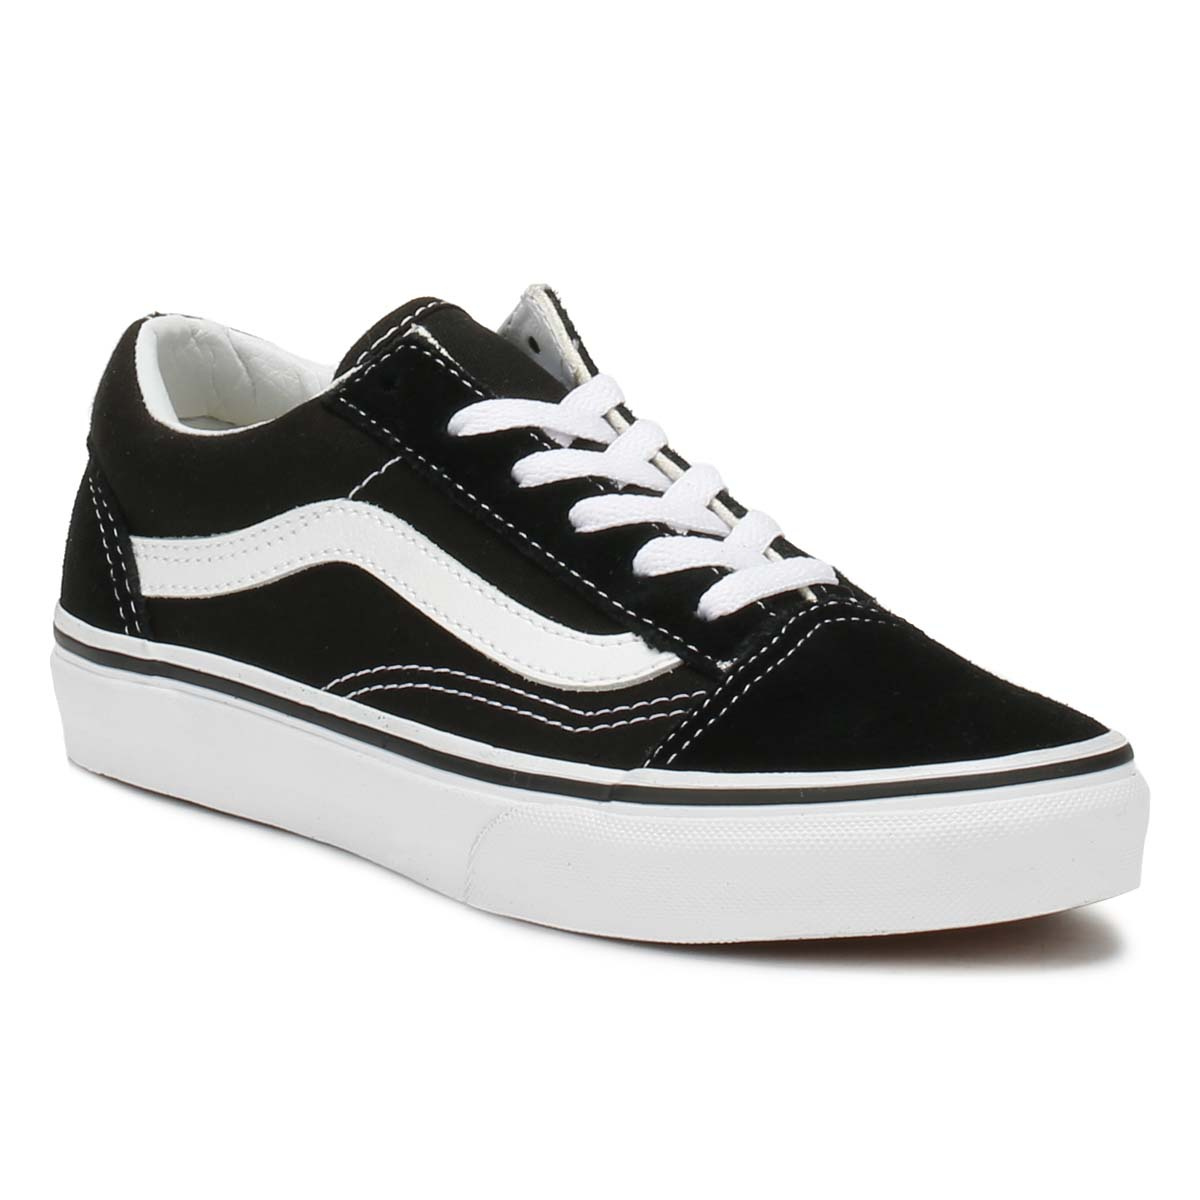 Vans-Kids-Trainers-Black-amp-True-White-Old-Skool-Lace-Up-Casual-Skate-Shoes